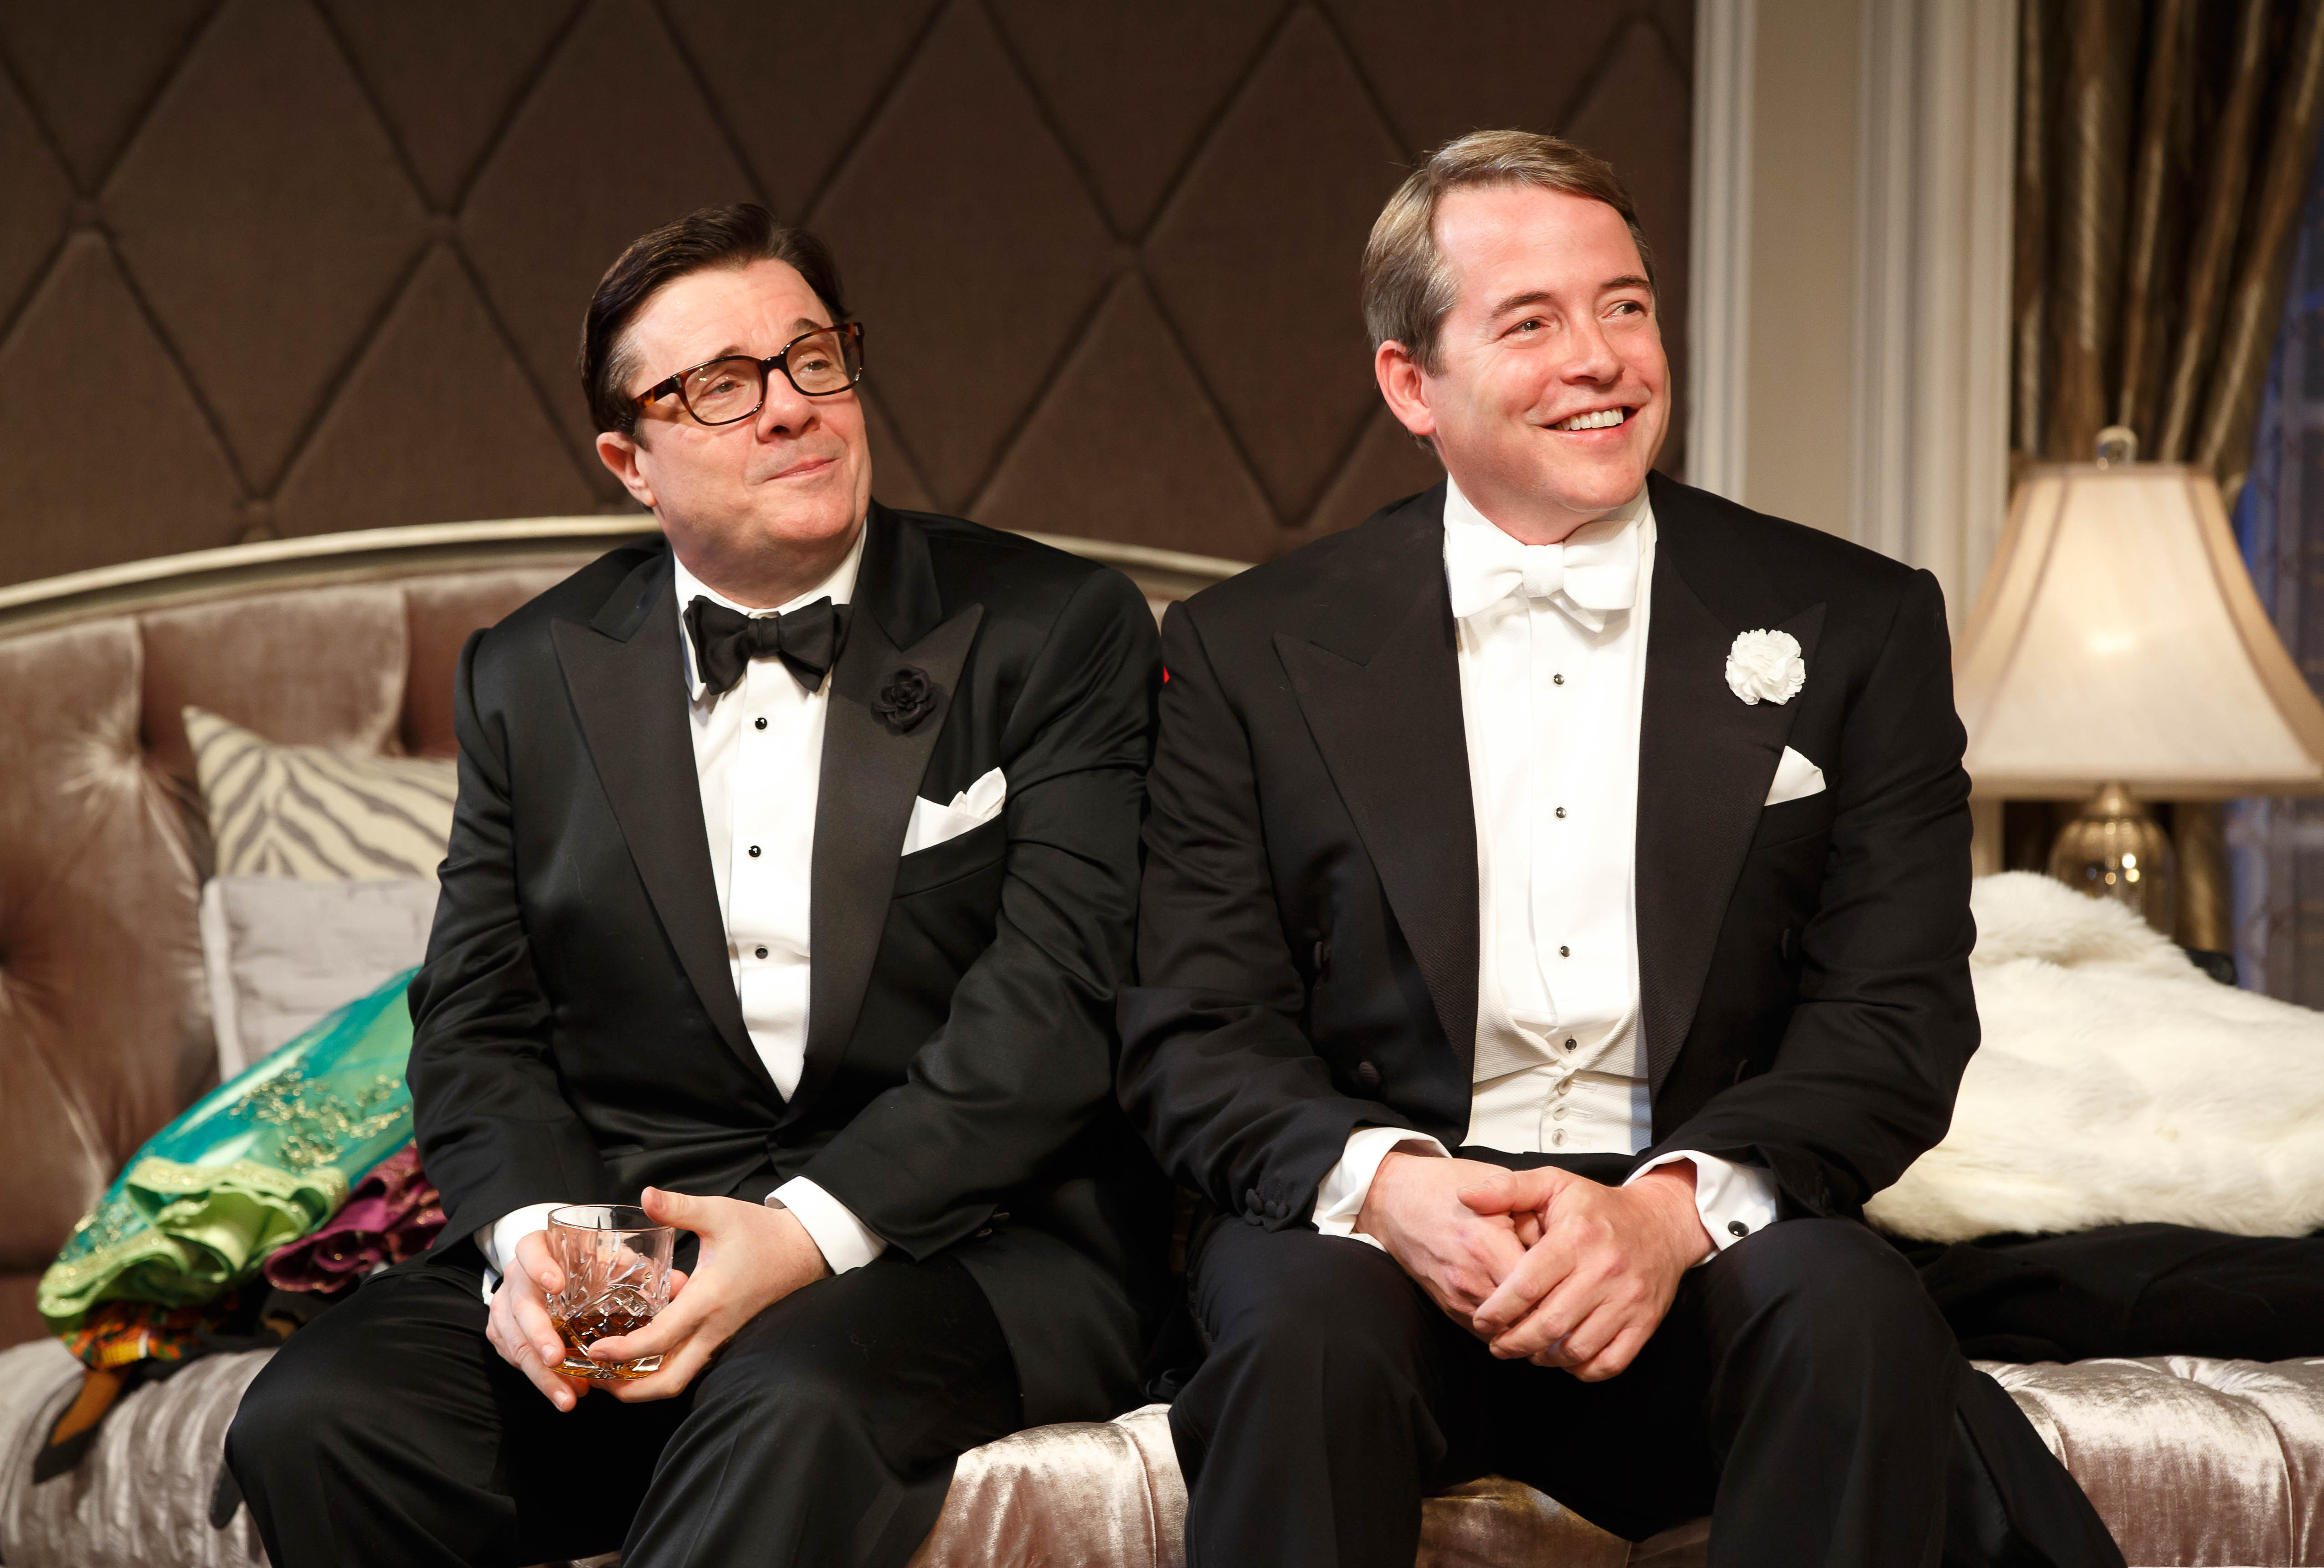 Looking Back at Playbill's 2014 Interview With Nathan Lane and Matthew Broderick for It's Only a Play